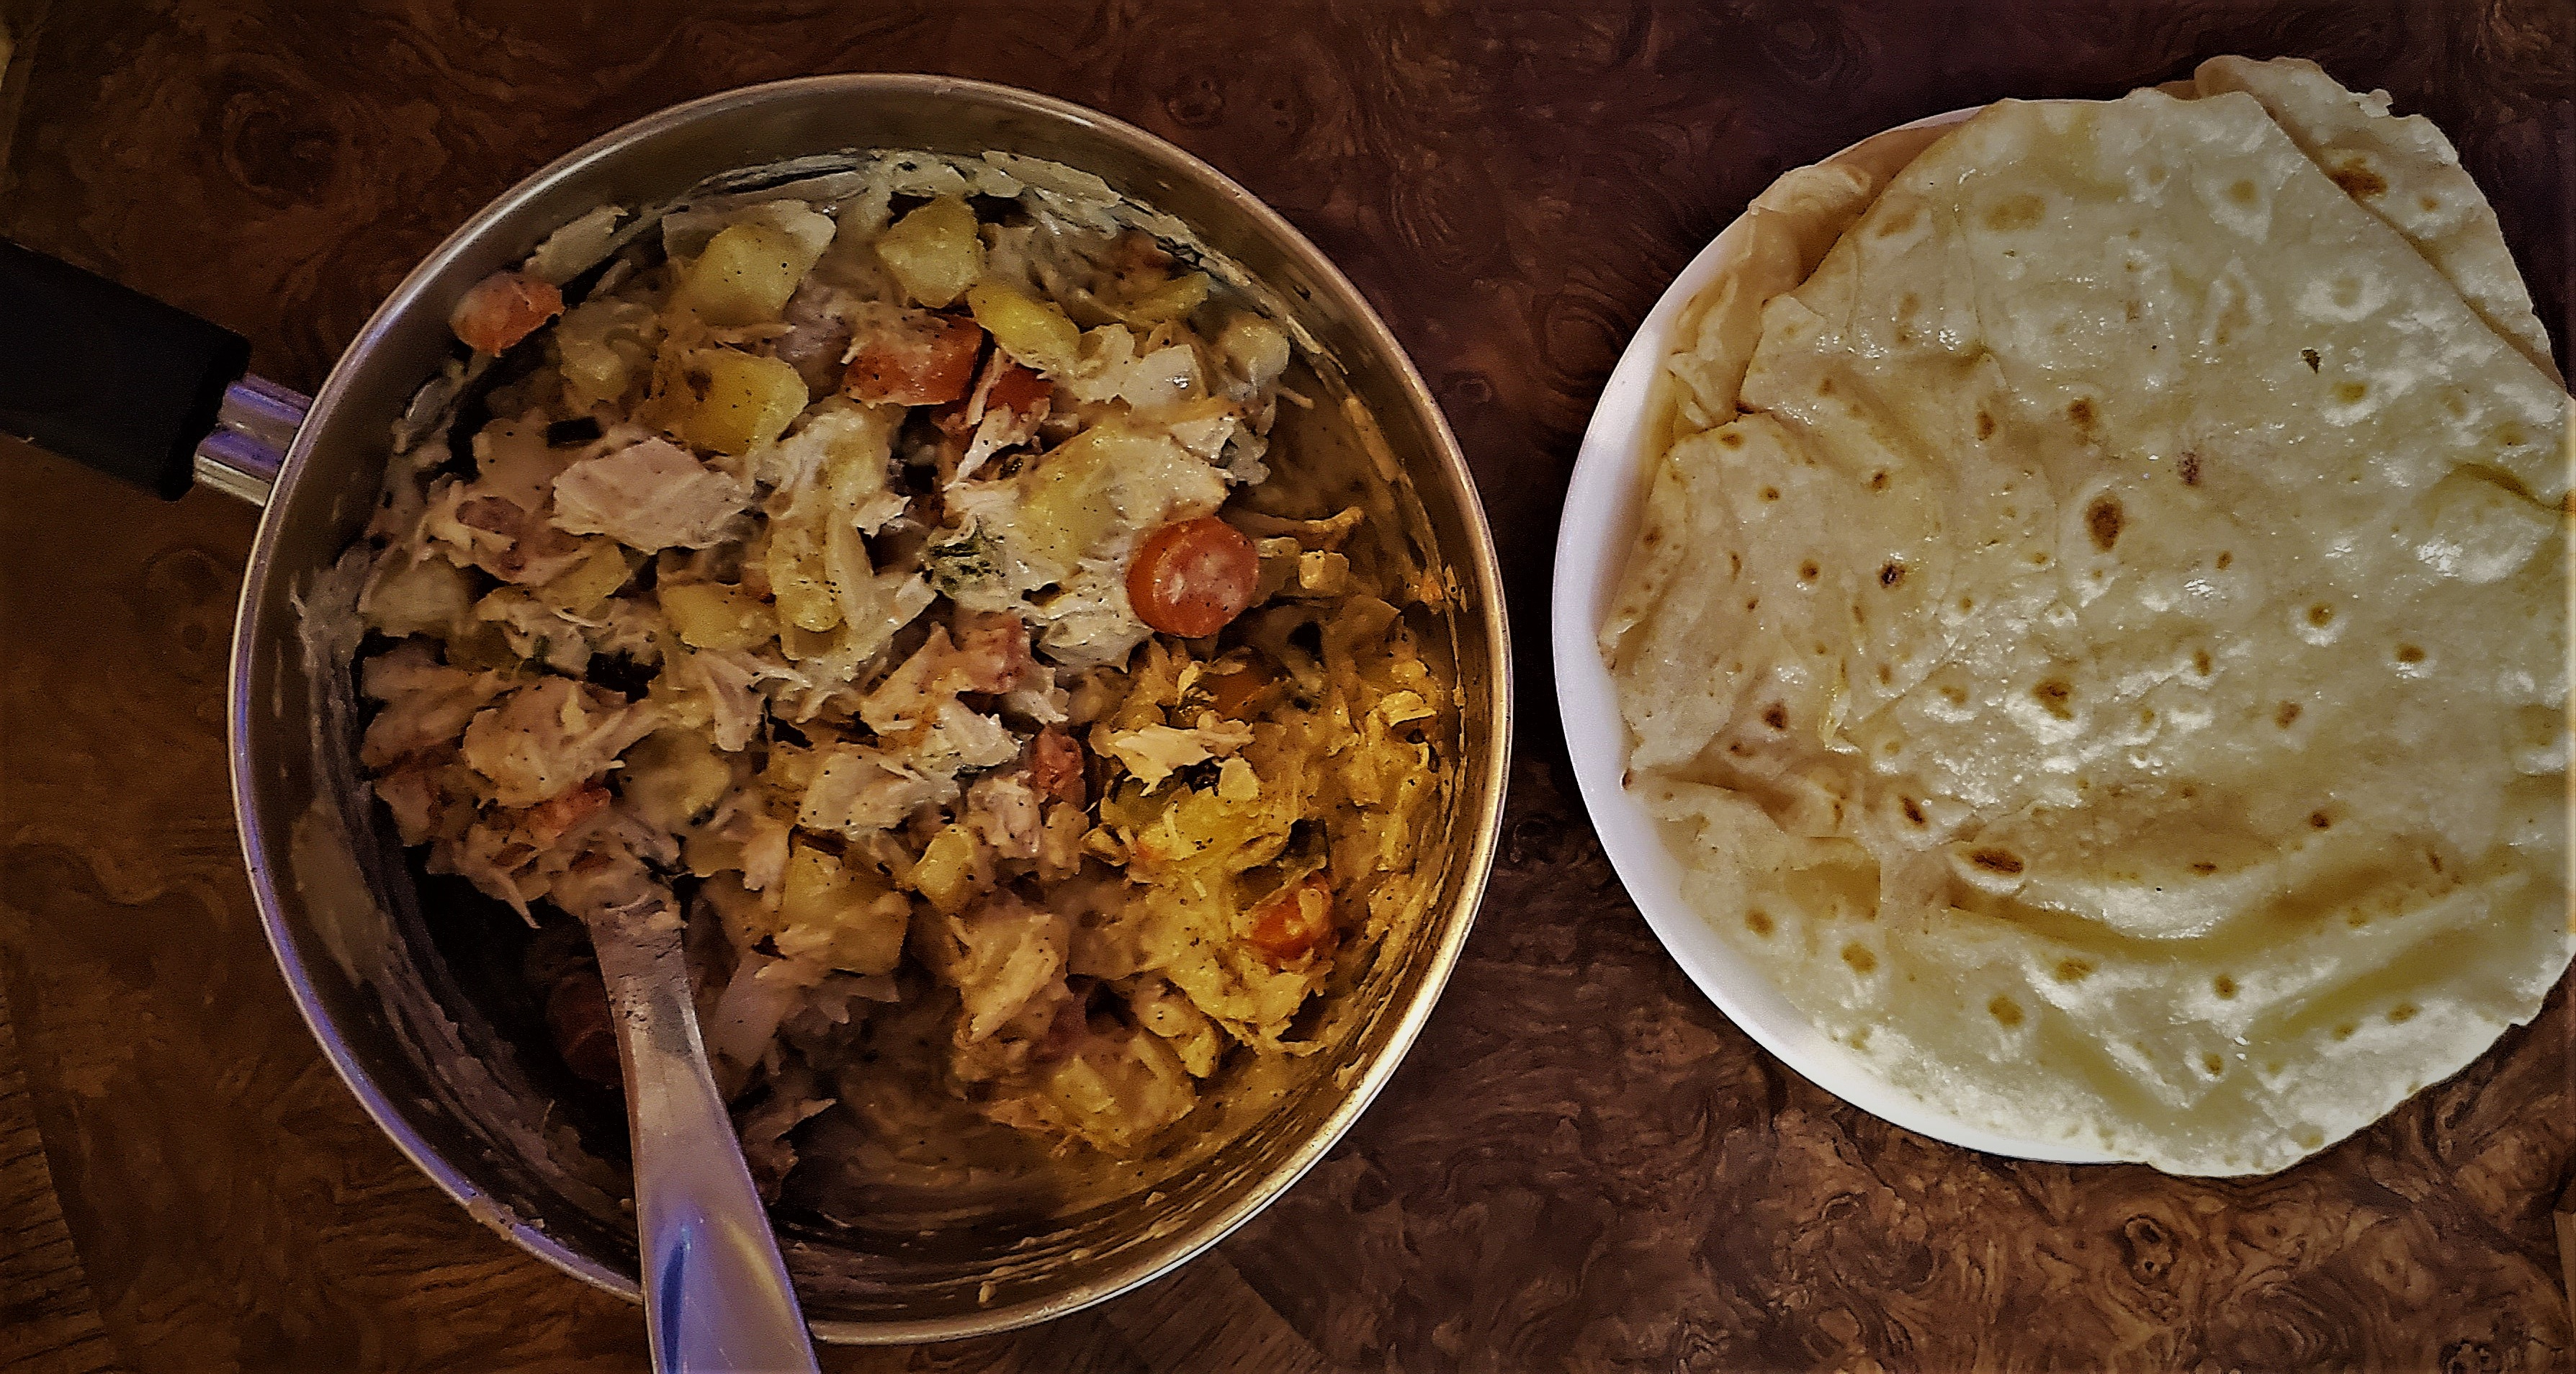 Photograph of chicken curry and prepared roti